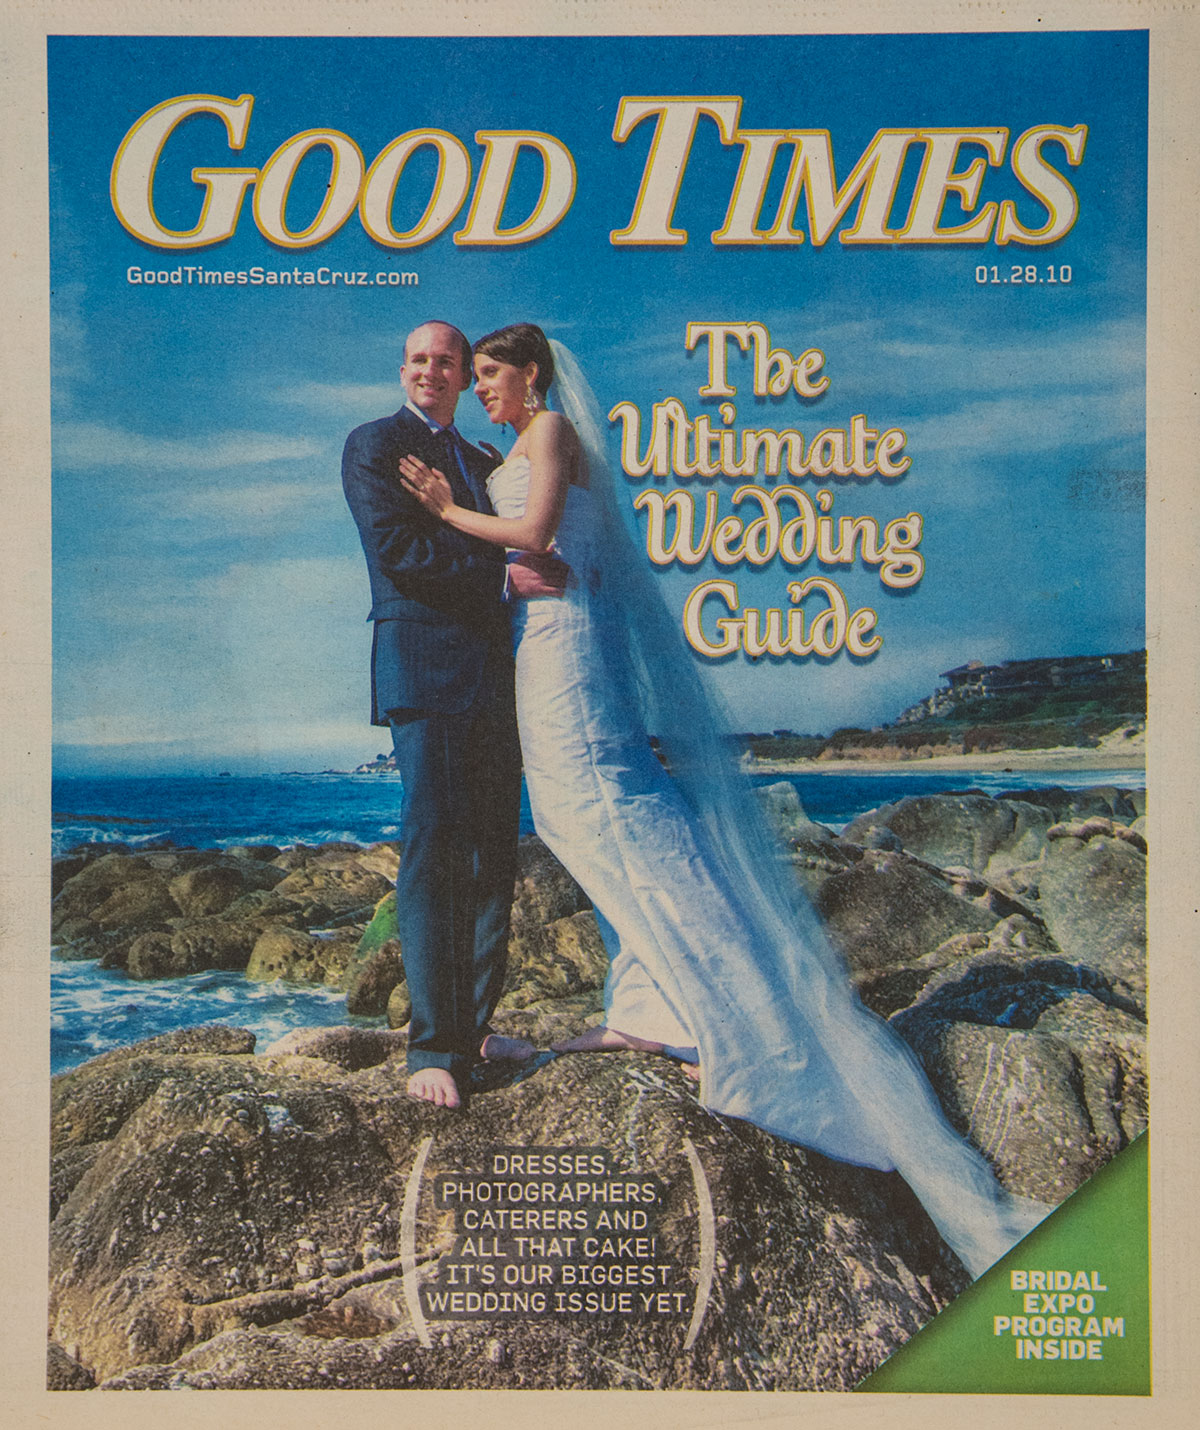 goodtimes-cover-wedding-guide